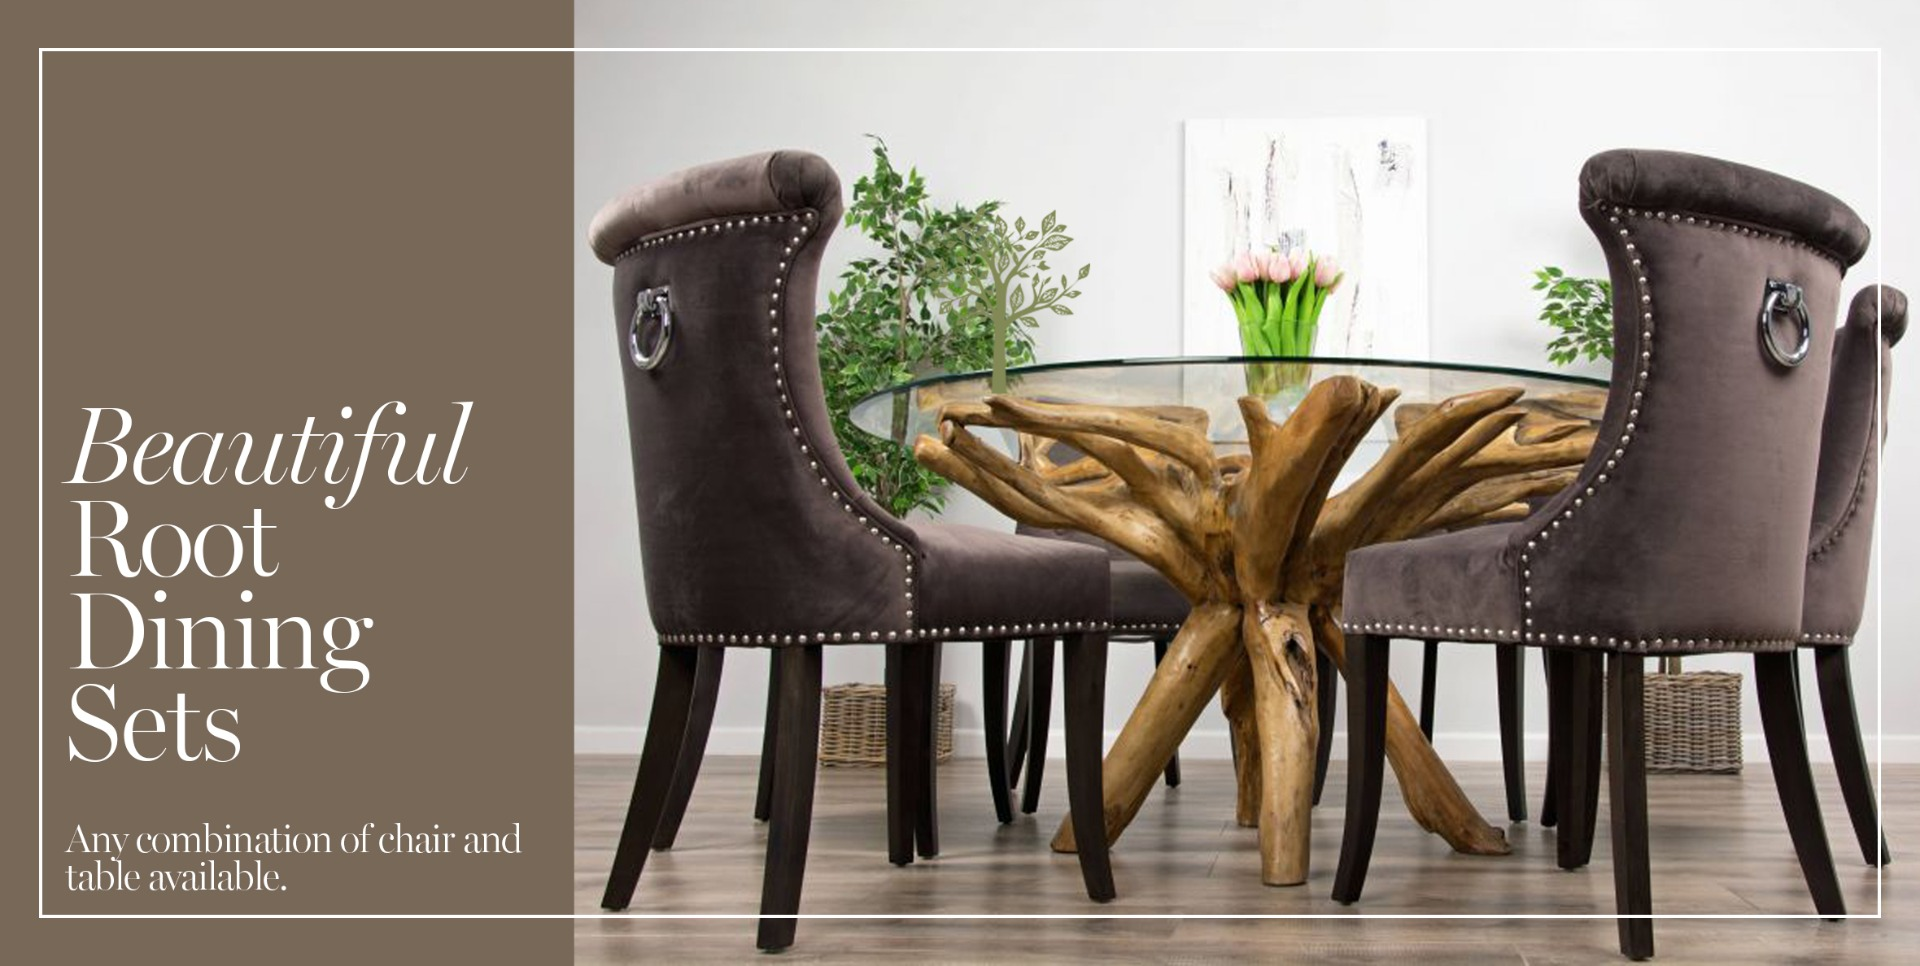 Reclaimed Wood Furniture Sustainable, Dining Room Chairs Uk